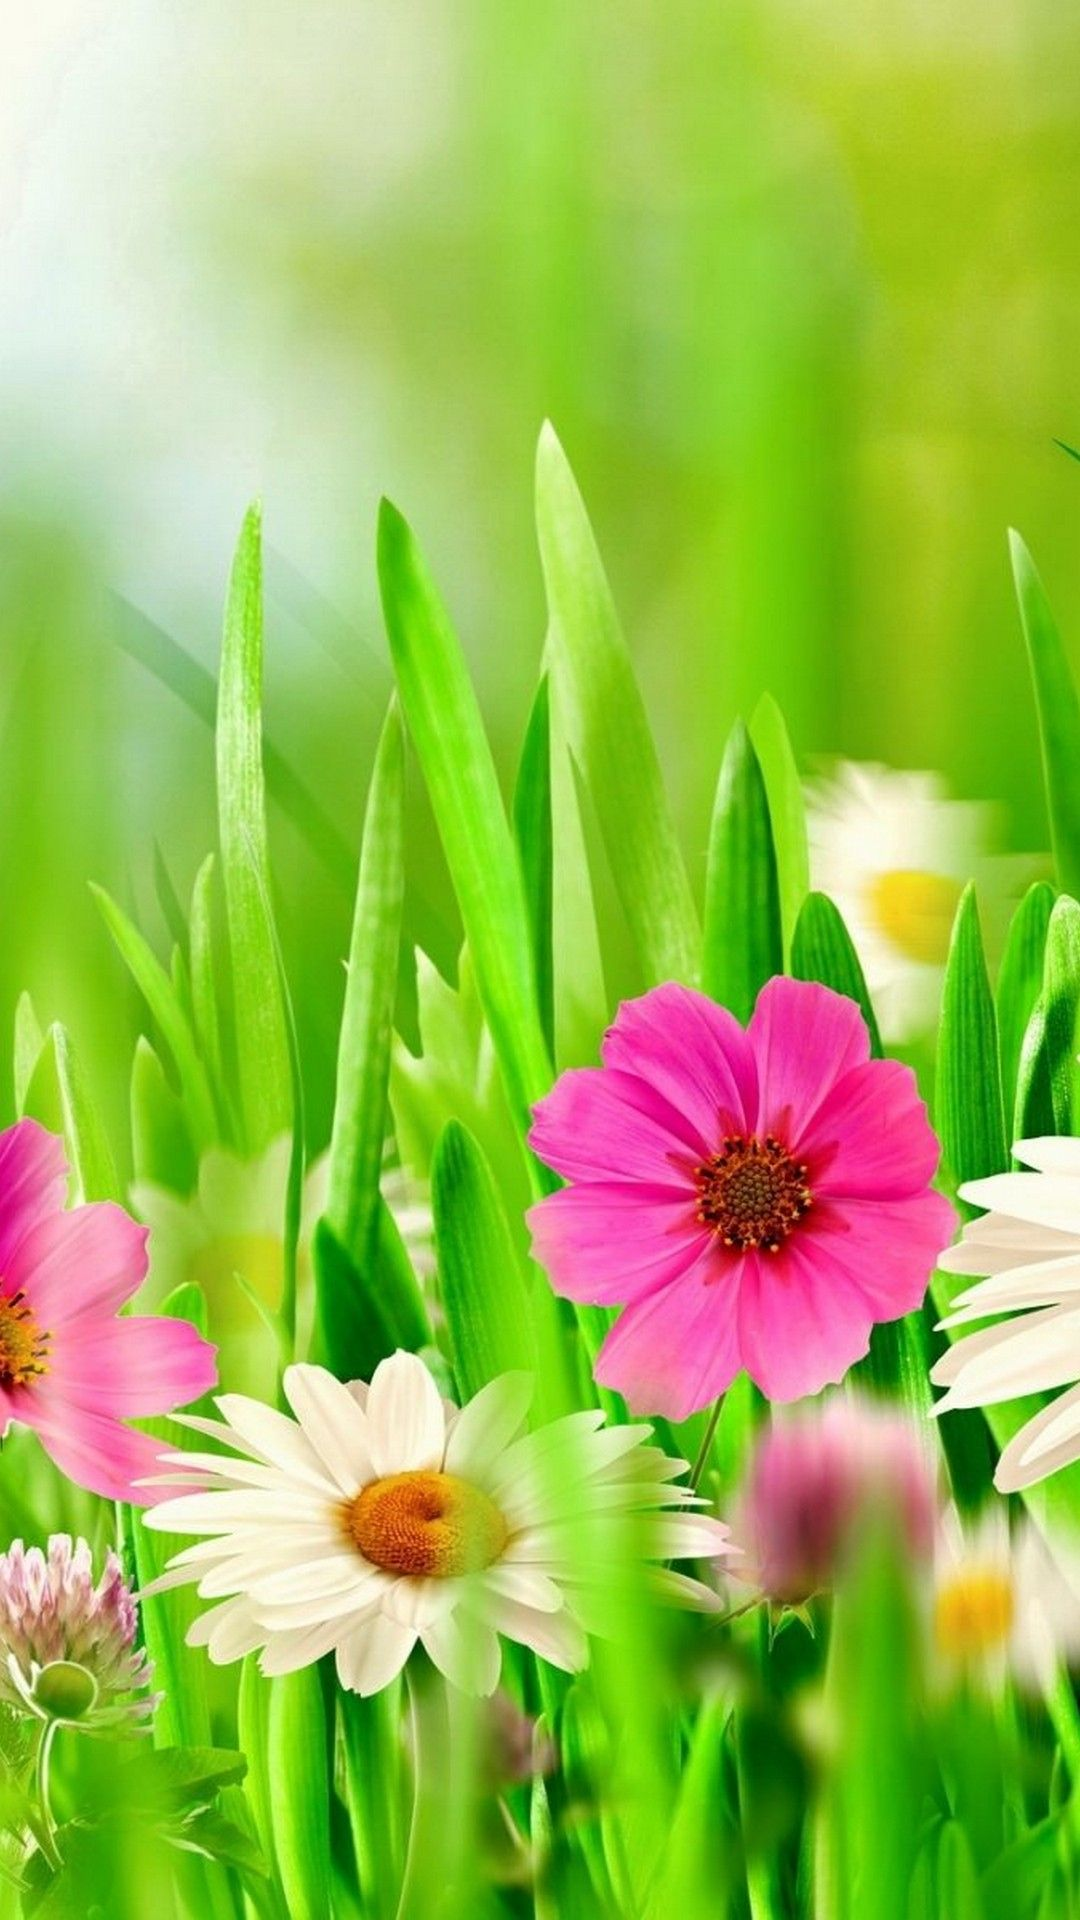 Spring Flowers 2020 Wallpapers - Wallpaper Cave